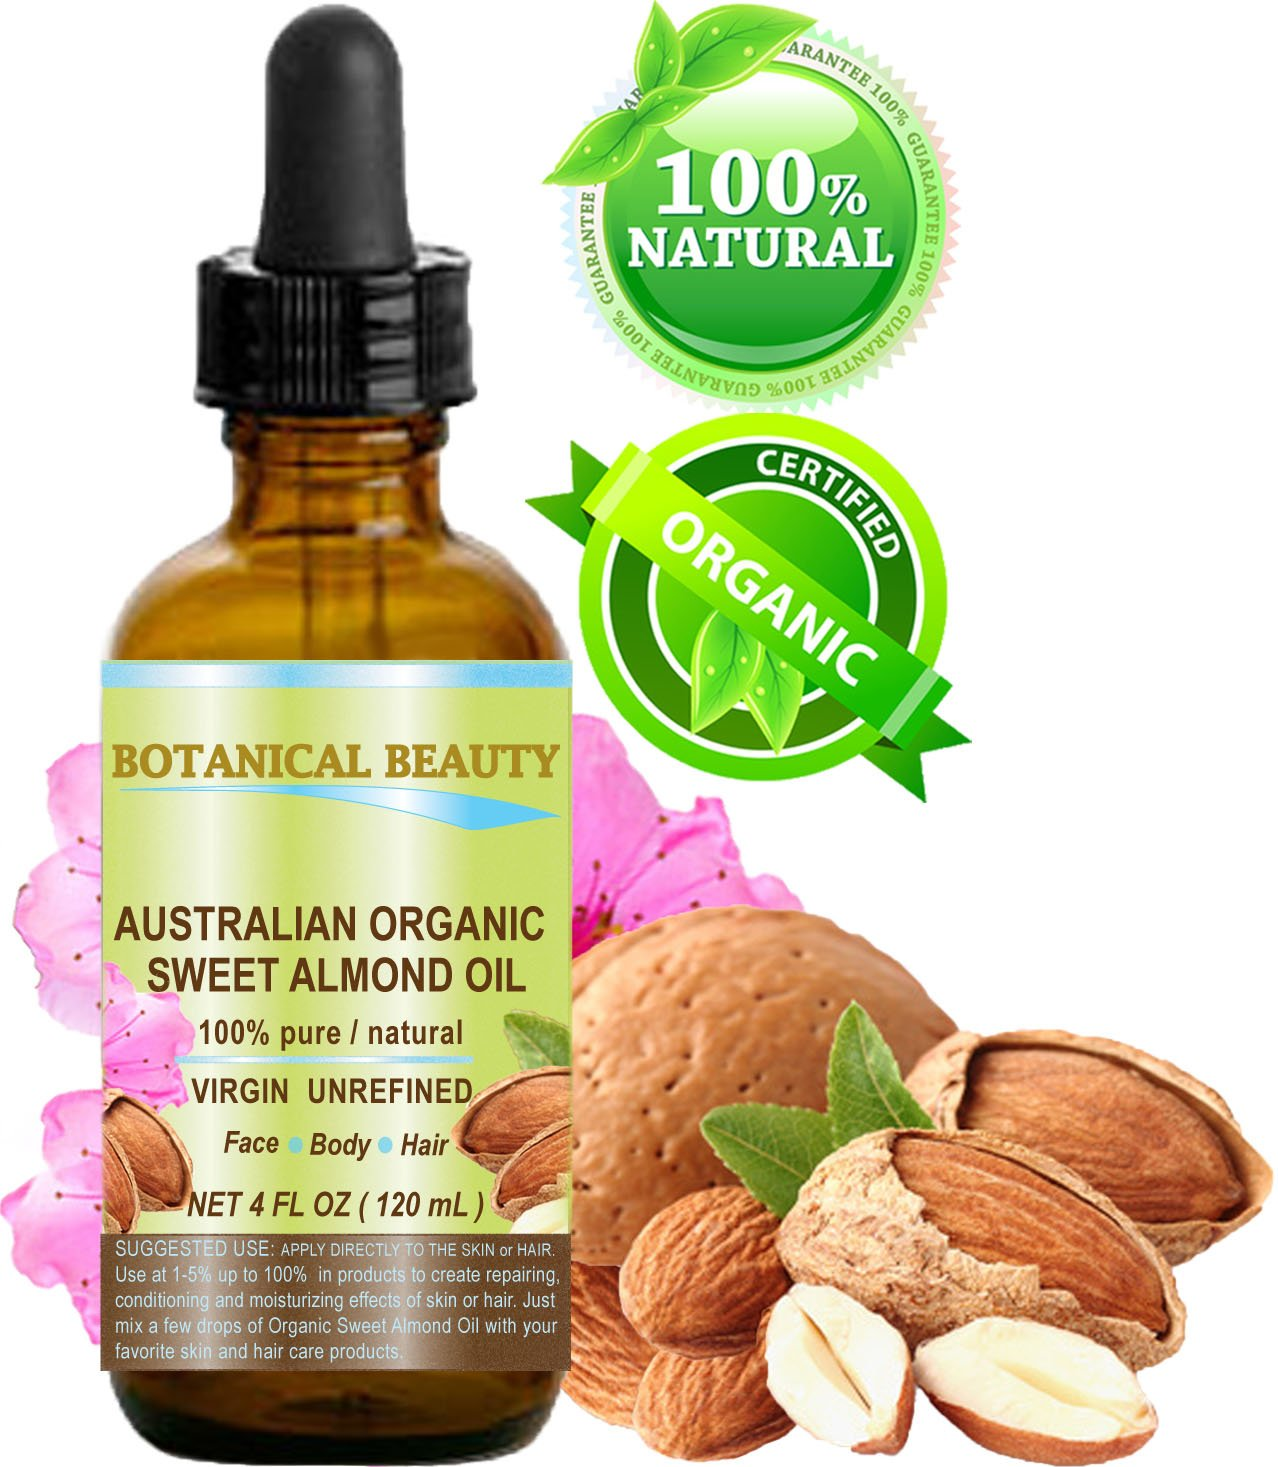 ORGANIC Sweet ALMOND OIL AUSTRALIAN 100% Pure/Virgin/Unrefined. 4 oz - 120 ml. For Face, Hair and Body.